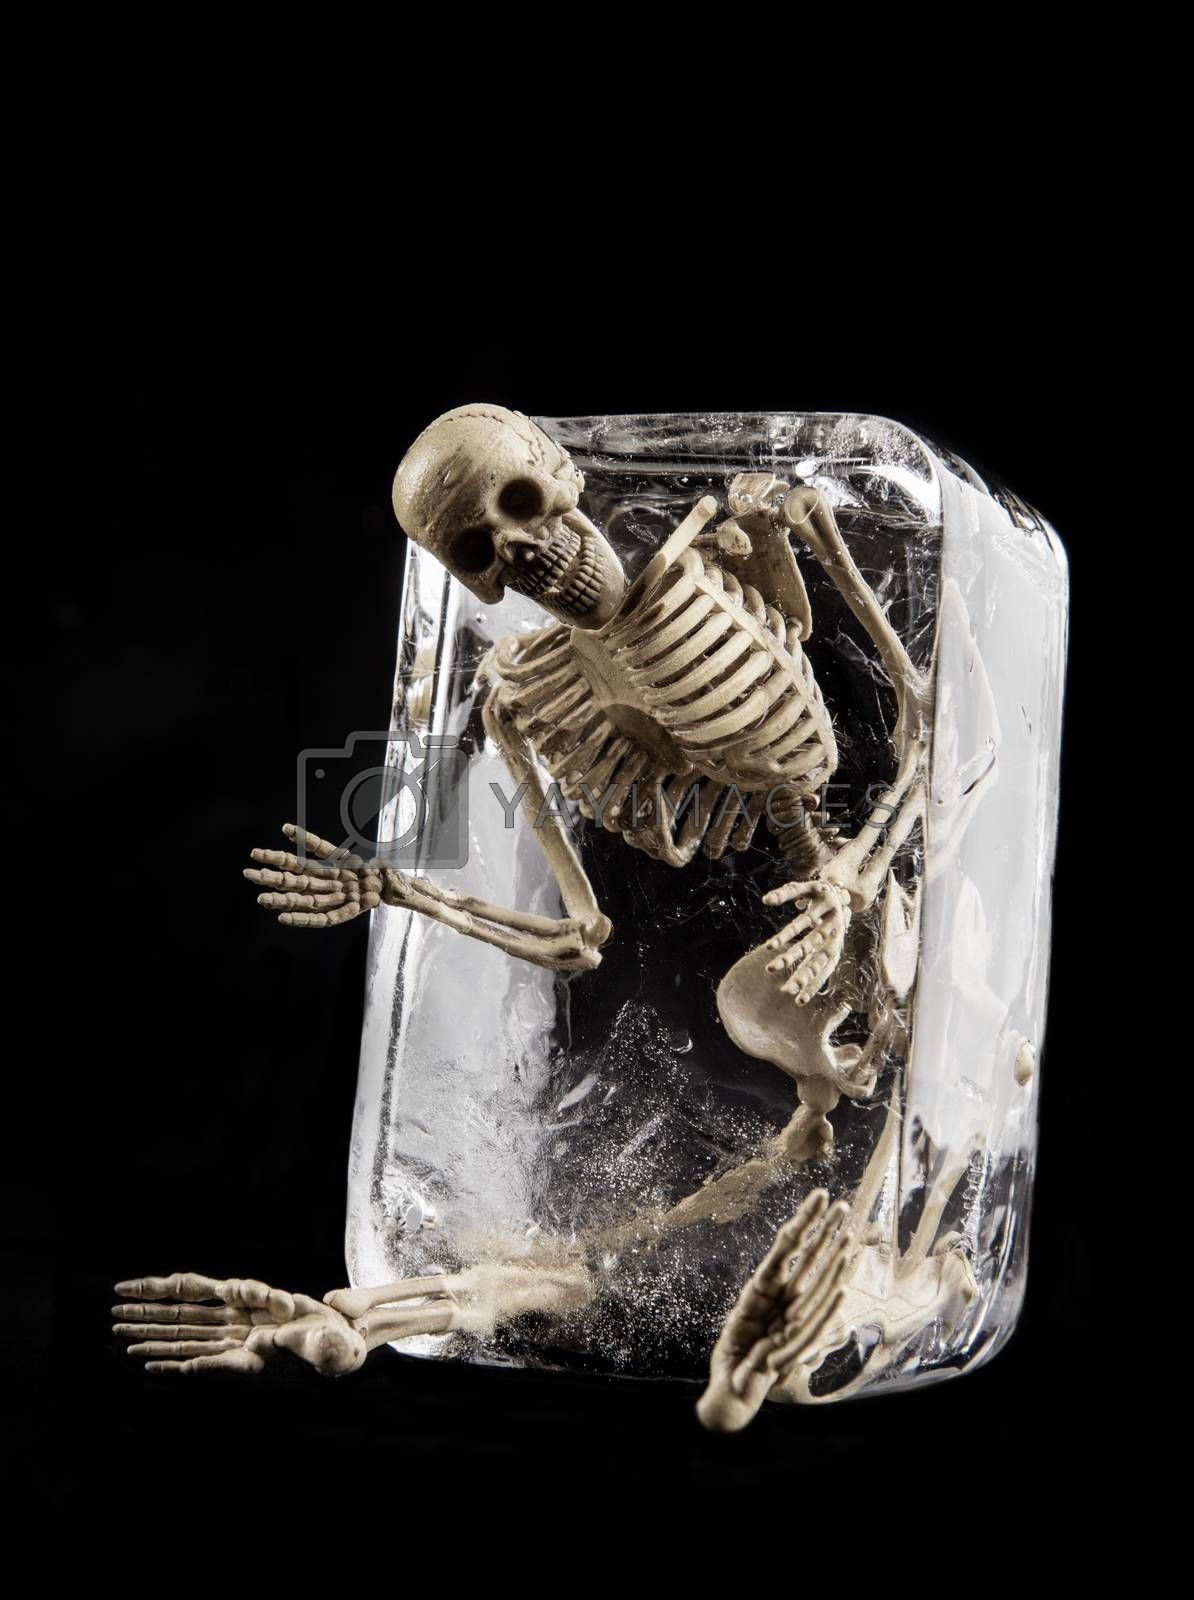 Death in ice concept, Skull in ice isolated on black background